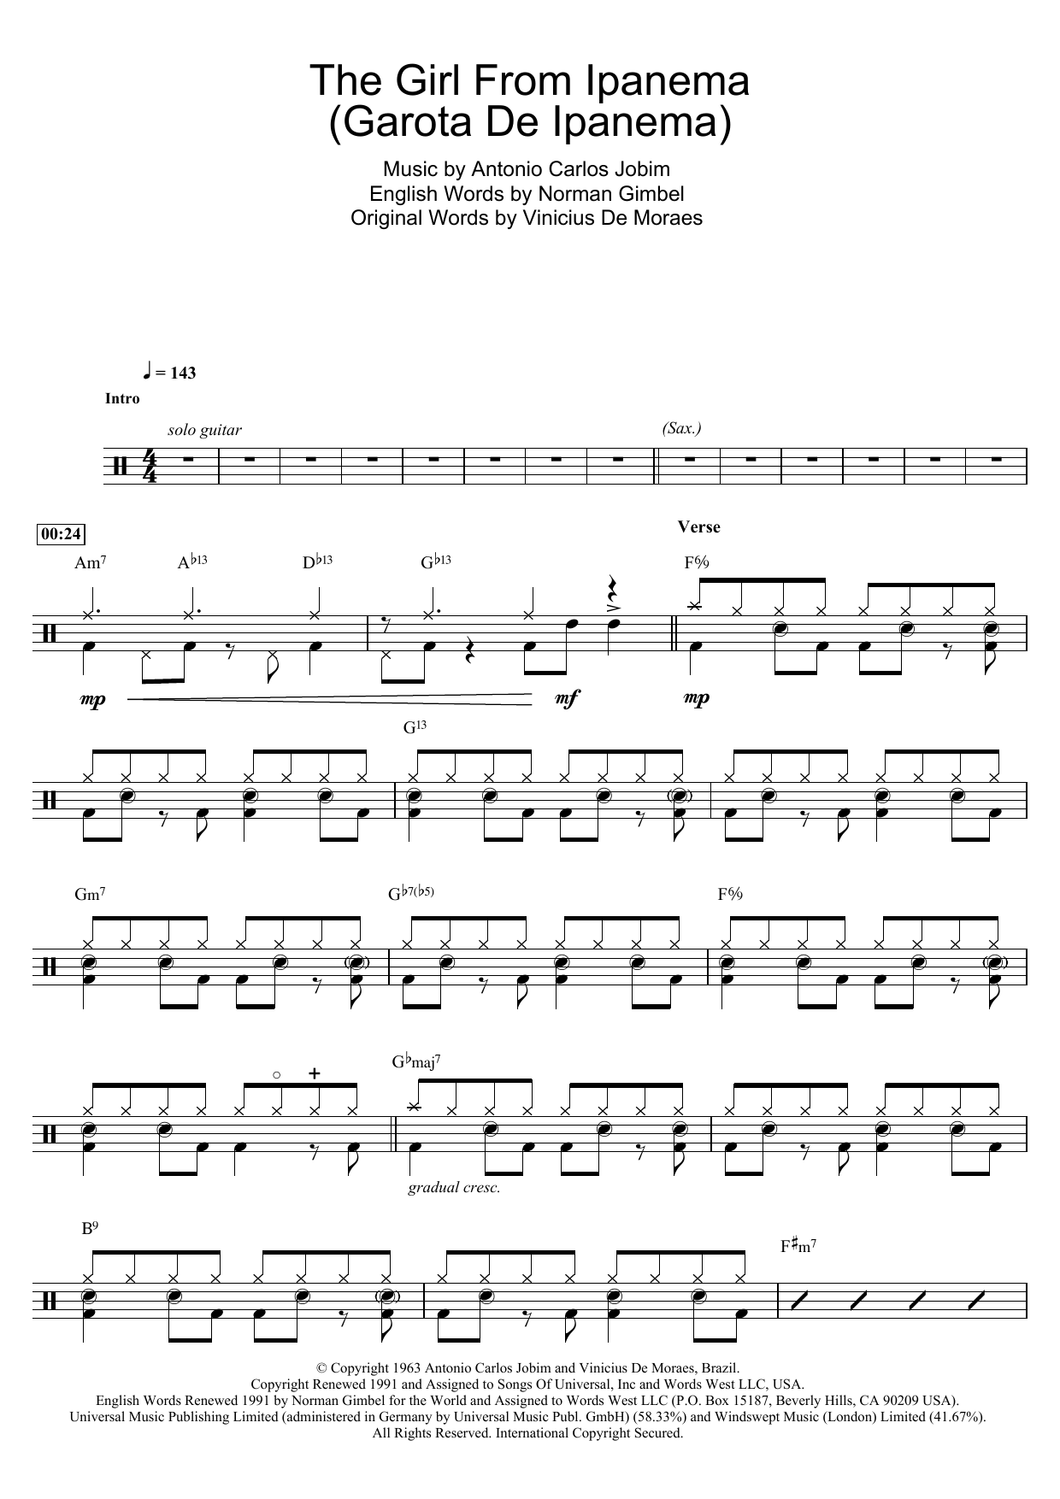 The Girl From Ipanema (Garota De Ipanema) - Antonio Carlos Jobim - Full Drum Transcription / Drum Sheet Music - SheetMusicDirect D